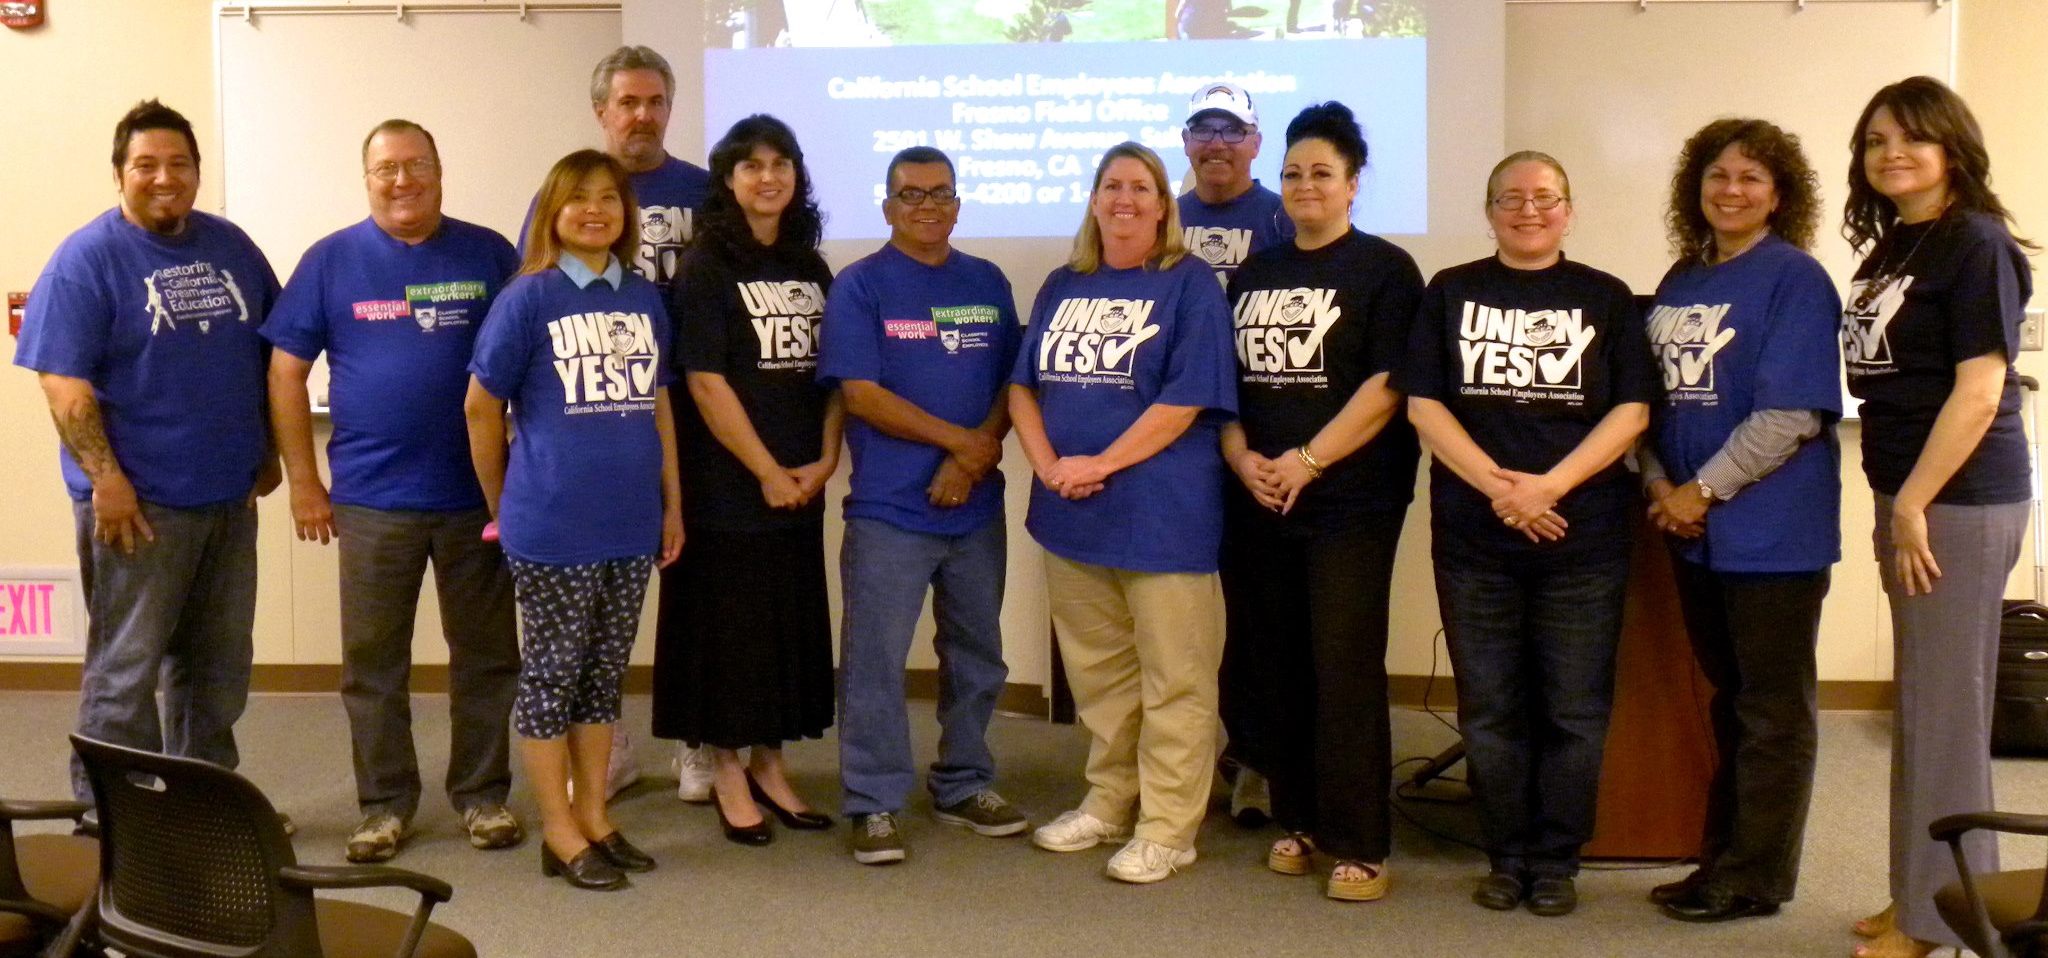 CSEA member with blue shirts